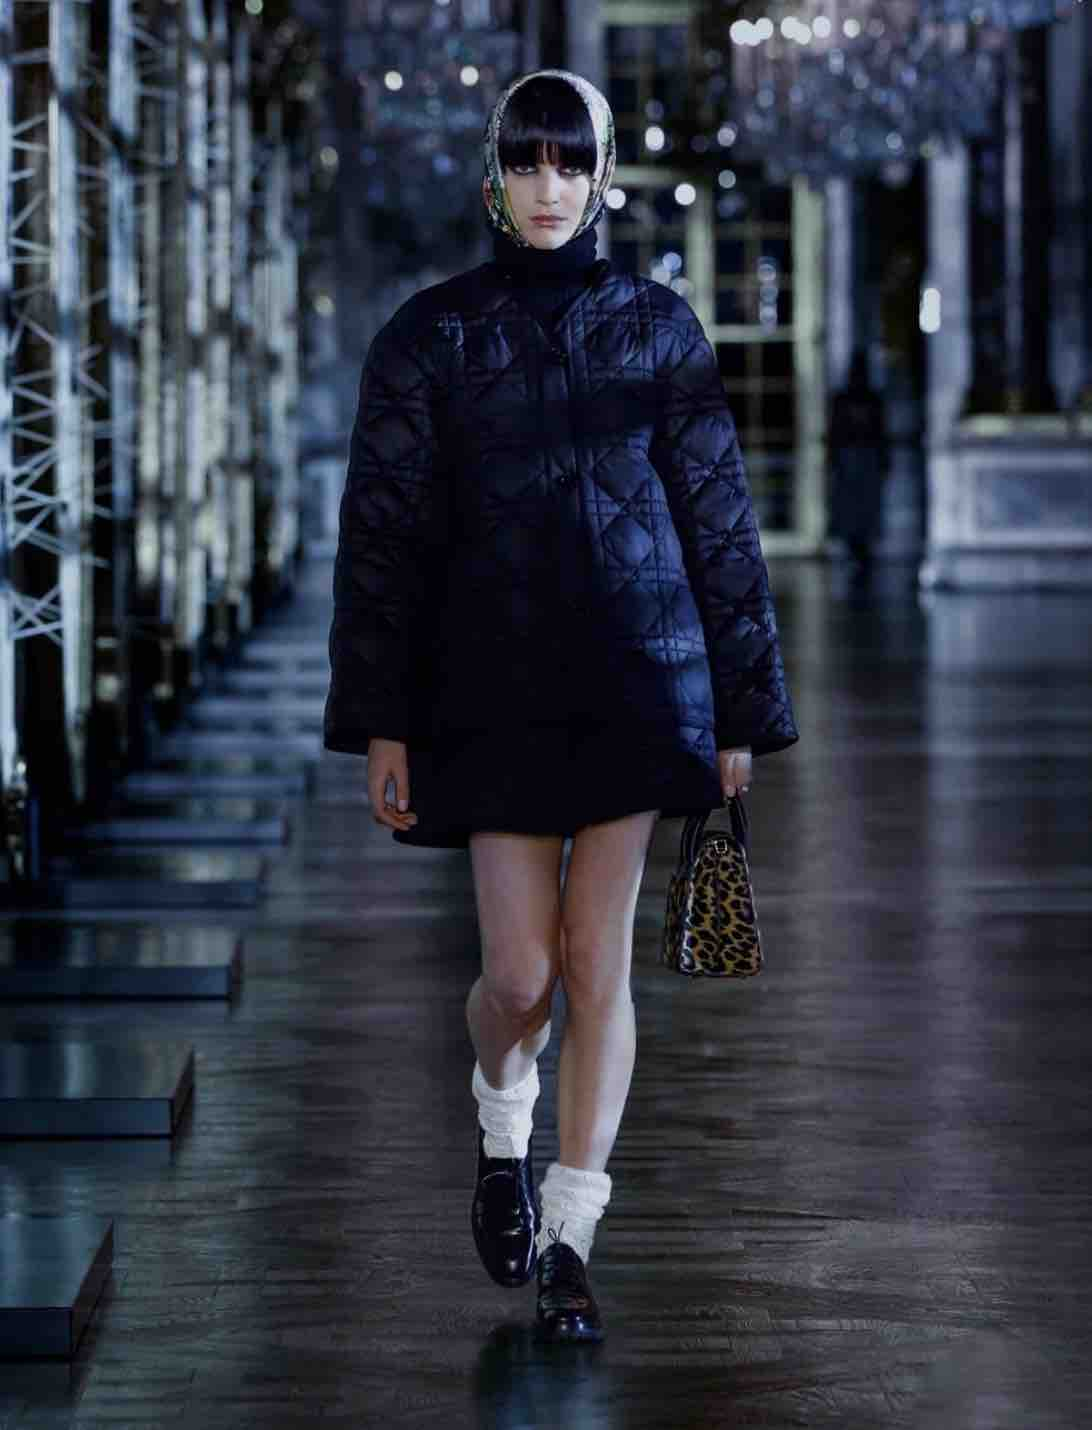 Christian Dior Quilted Coat Is One Of The Style Trends To Shop For Fall 2021